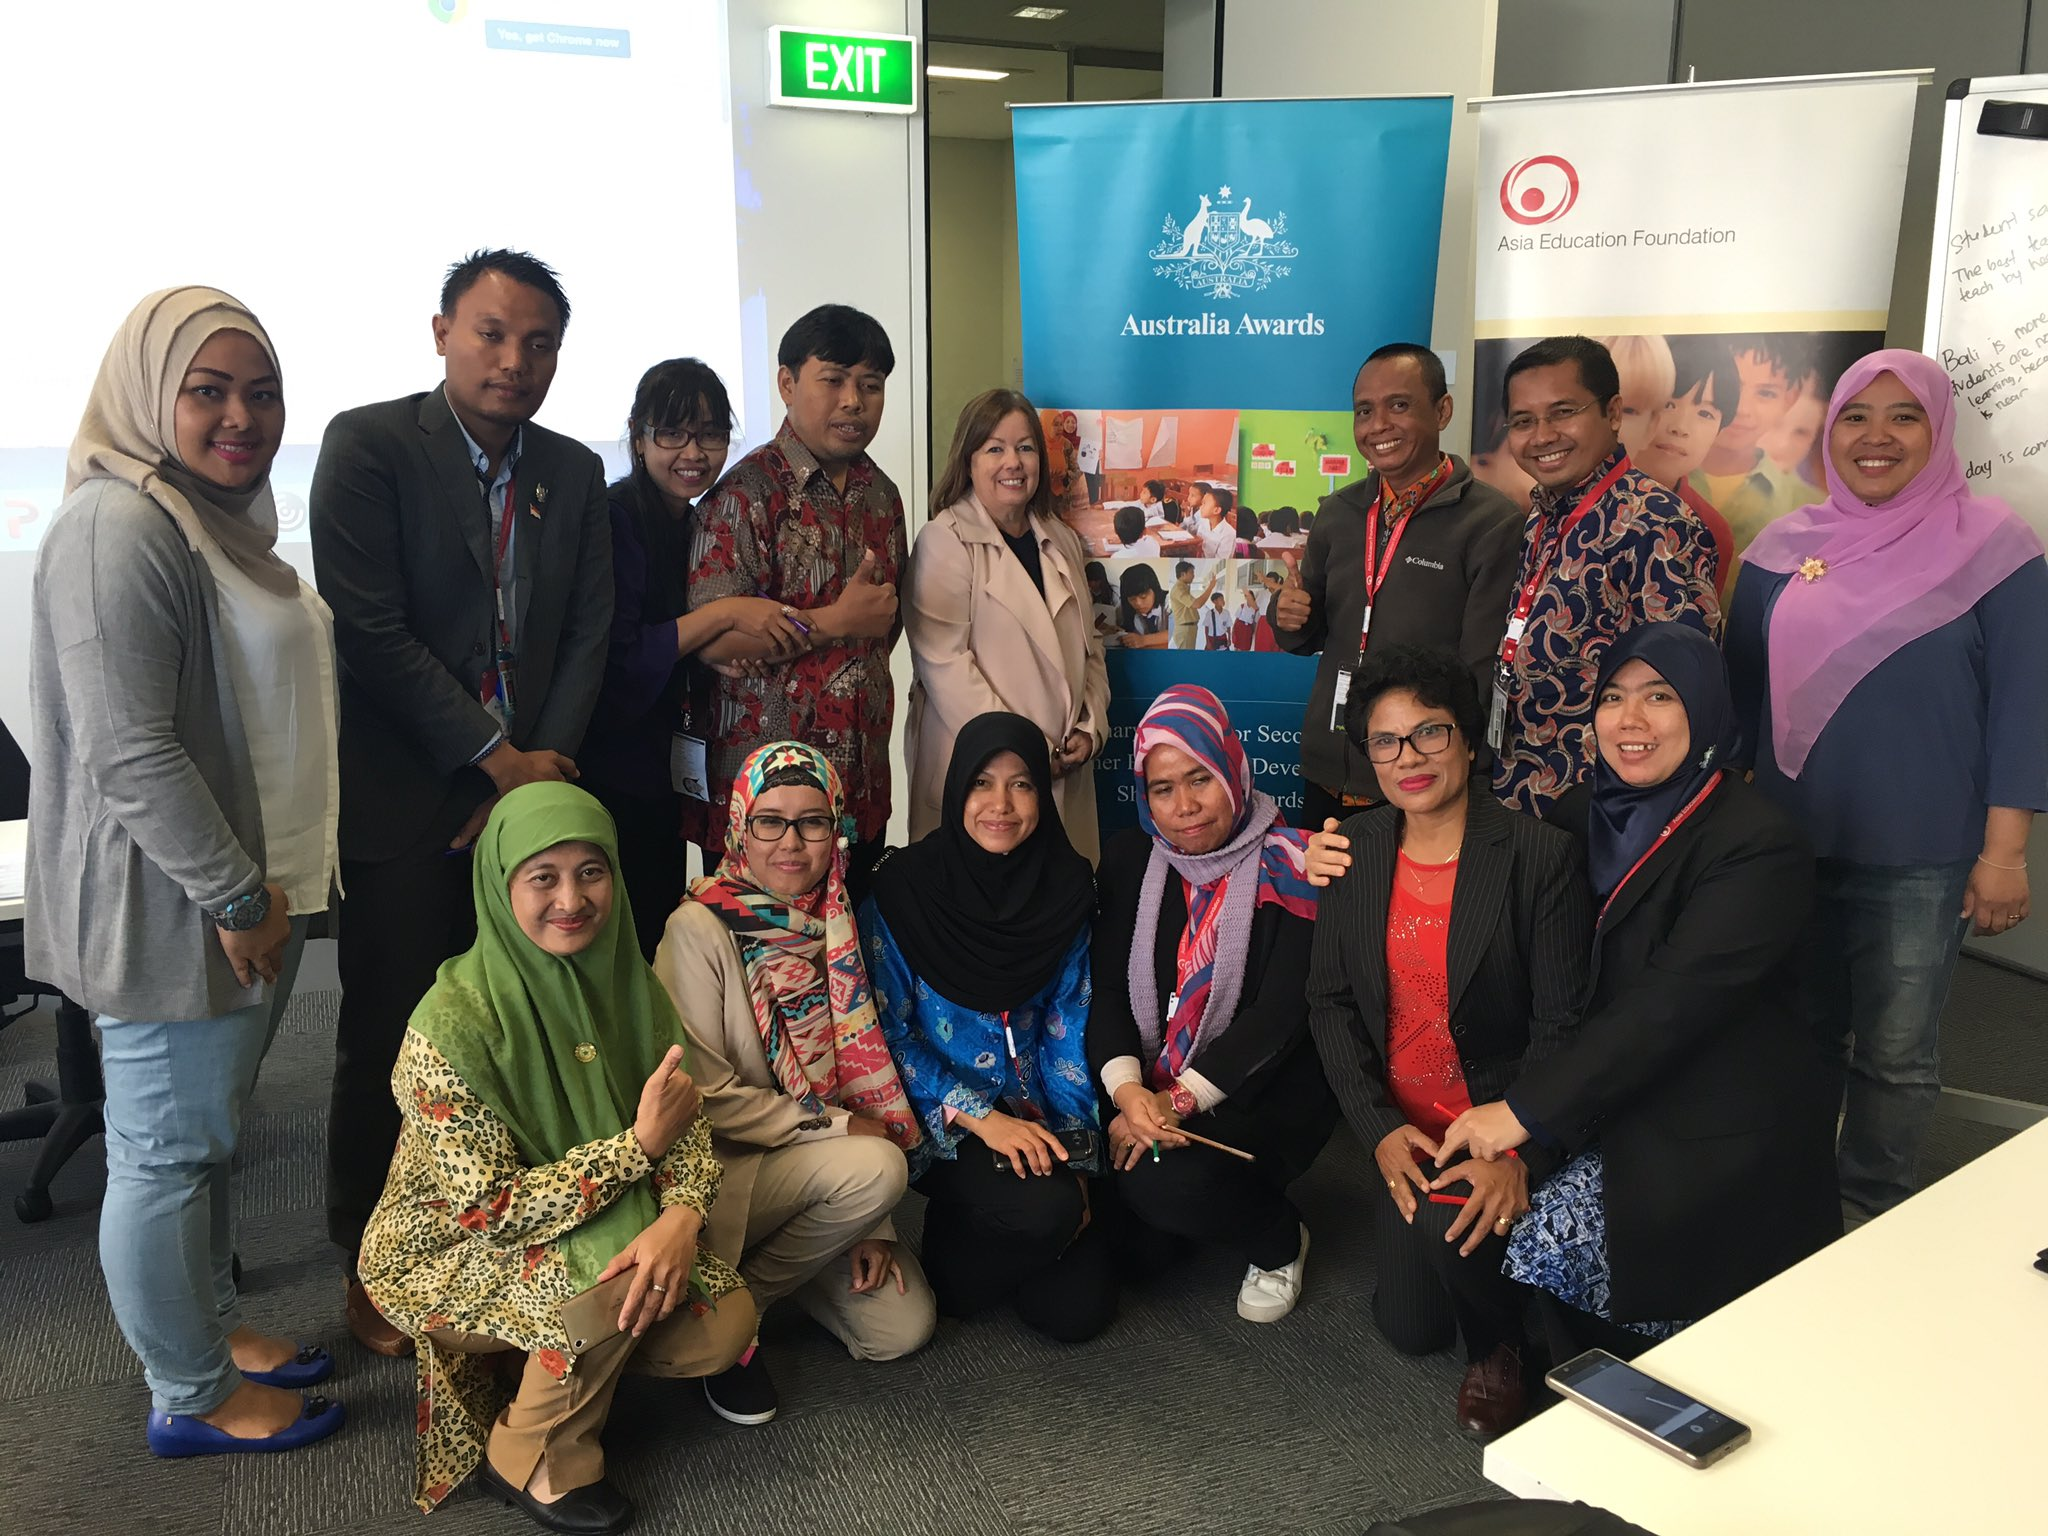 Many new friendships have been established across 🇦🇺 & 🇲🇨! Thanks @AustraliaAwards @LisaHayman1 @BonnieHermawan @a_oshannessy #OzAlum https://t.co/SnX4aAK4uU